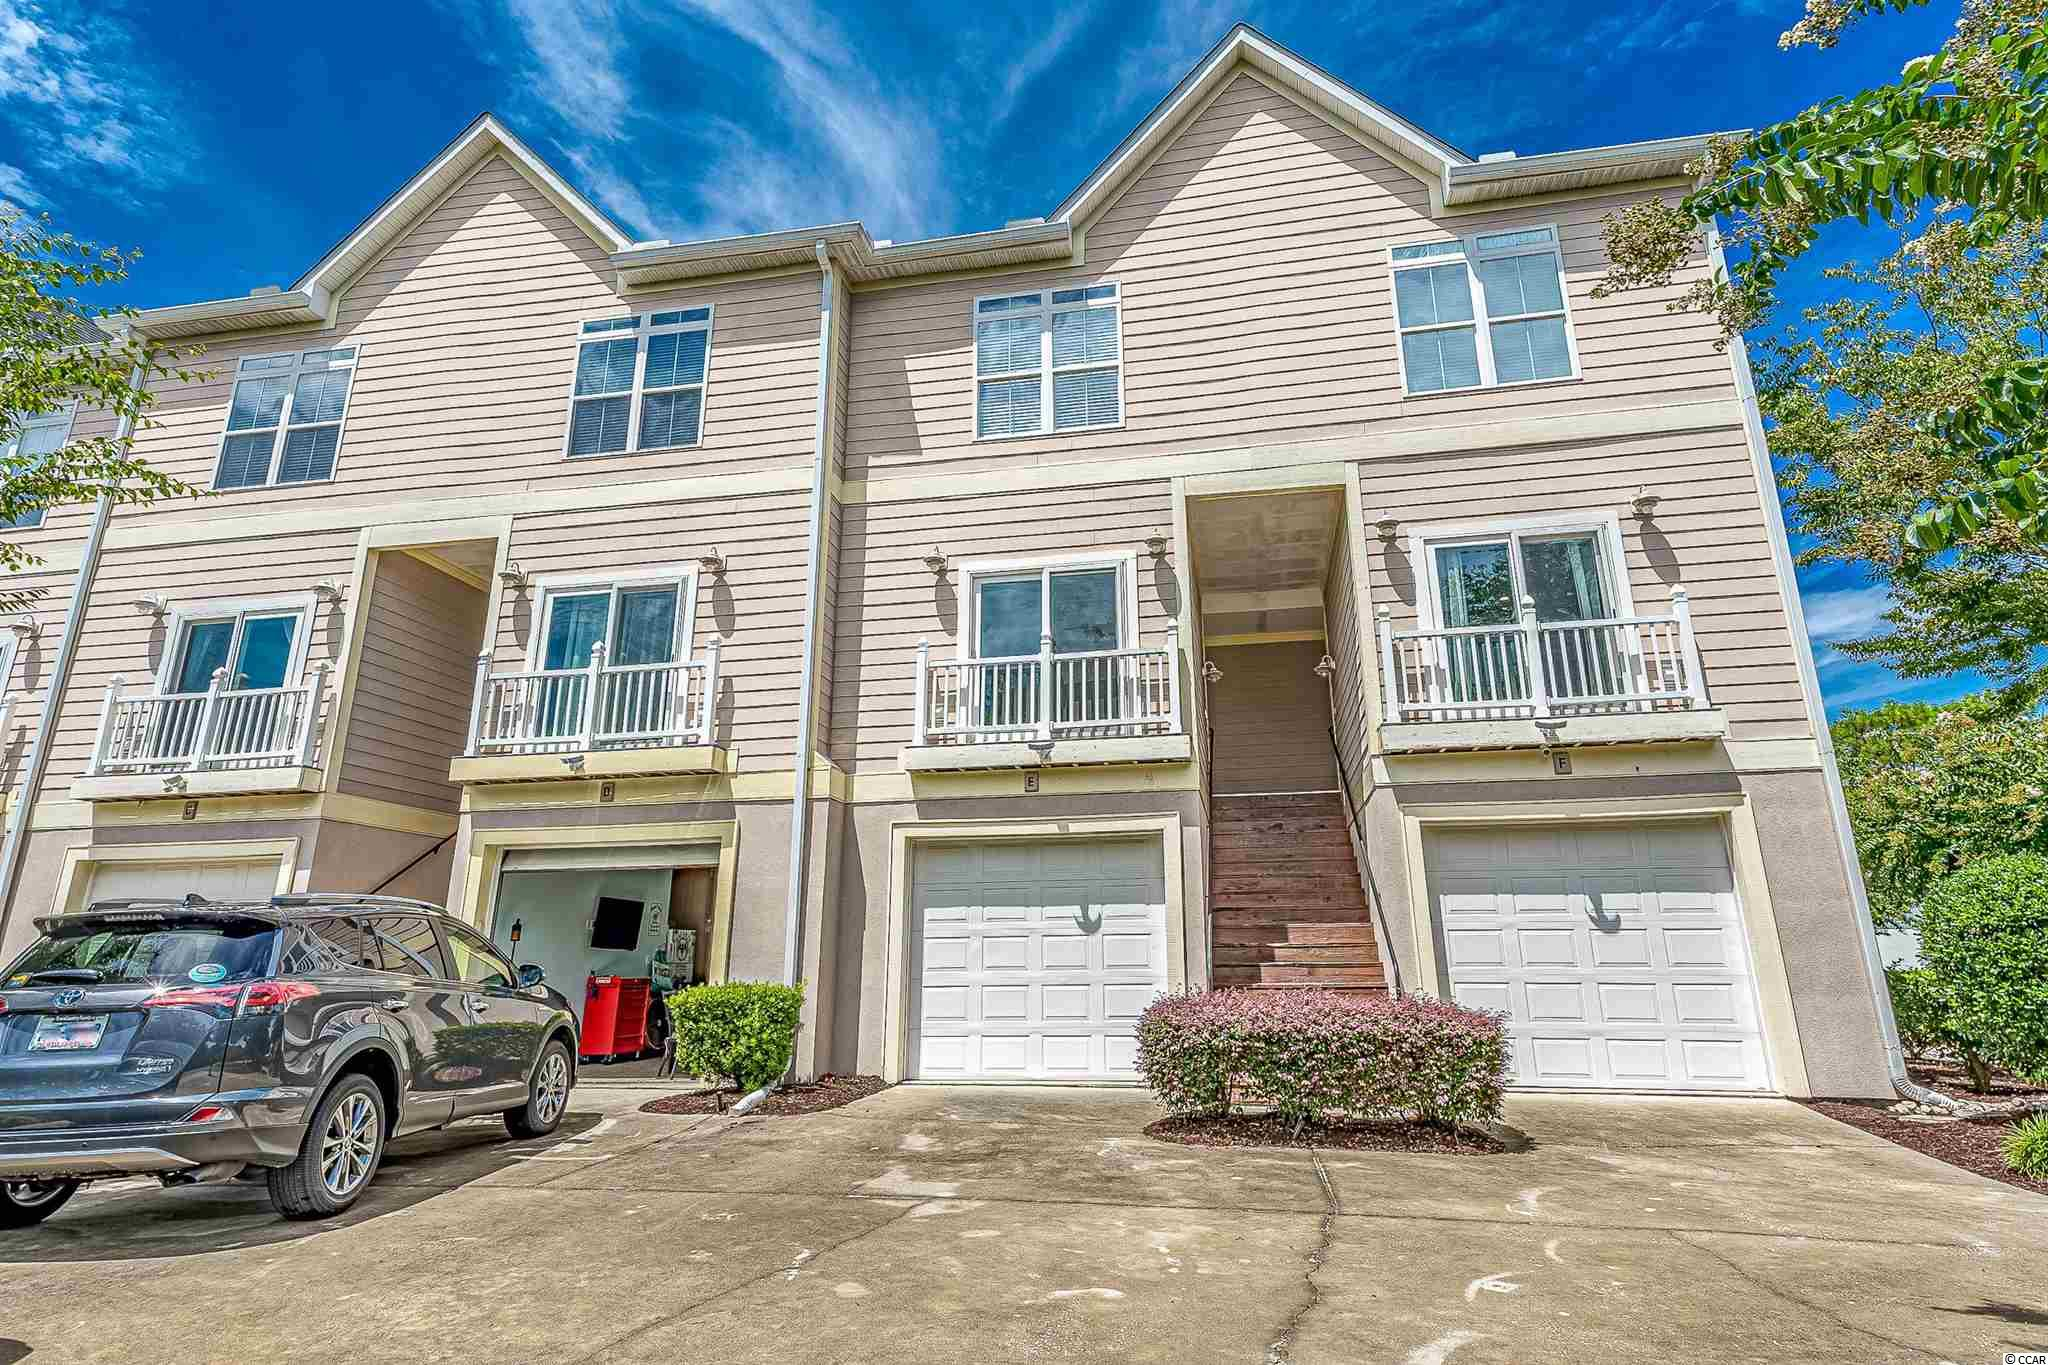 Located in The Avenues, one of Myrtle Beach's most desirable residential areas, is Pineapple Bay: a small community of townhome-style condos just two blocks to the beach! Featuring 3-bedrooms, 3 full bathrooms, and a private two-car drive-through garage, this unit makes the perfect primary residence or second home. Once through the front door, you enter the open concept living room with crown molding throughout and Juliet balconies, allowing you to take in the ocean breeze. Just off the living room is the kitchen, with granite countertops, matching appliances, and a brand new kitchen sink (installed in 2020). Also on this level is one of the guest bedrooms and full bathroom. Upstairs is where you'll find the master bedroom and ensuite, as well as another guest bedroom with a full bathroom, and the laundry. All of the bedrooms have ceilings fans. The current owner made many updates to the property in 2020, including patching all of the drywall and painting throughout, new carpet in all of the bedrooms, new blinds throughout, and ARMAFLEX insulation. Needless to say it's been immaculately maintained and the current owner has only used it as a primary residence. Not to mention, the HVAC was replaced just three years ago! You'll be hard pressed to find a better location, layout, and square footage with a private garage and low HOA dues. Don't let this one pass you by!